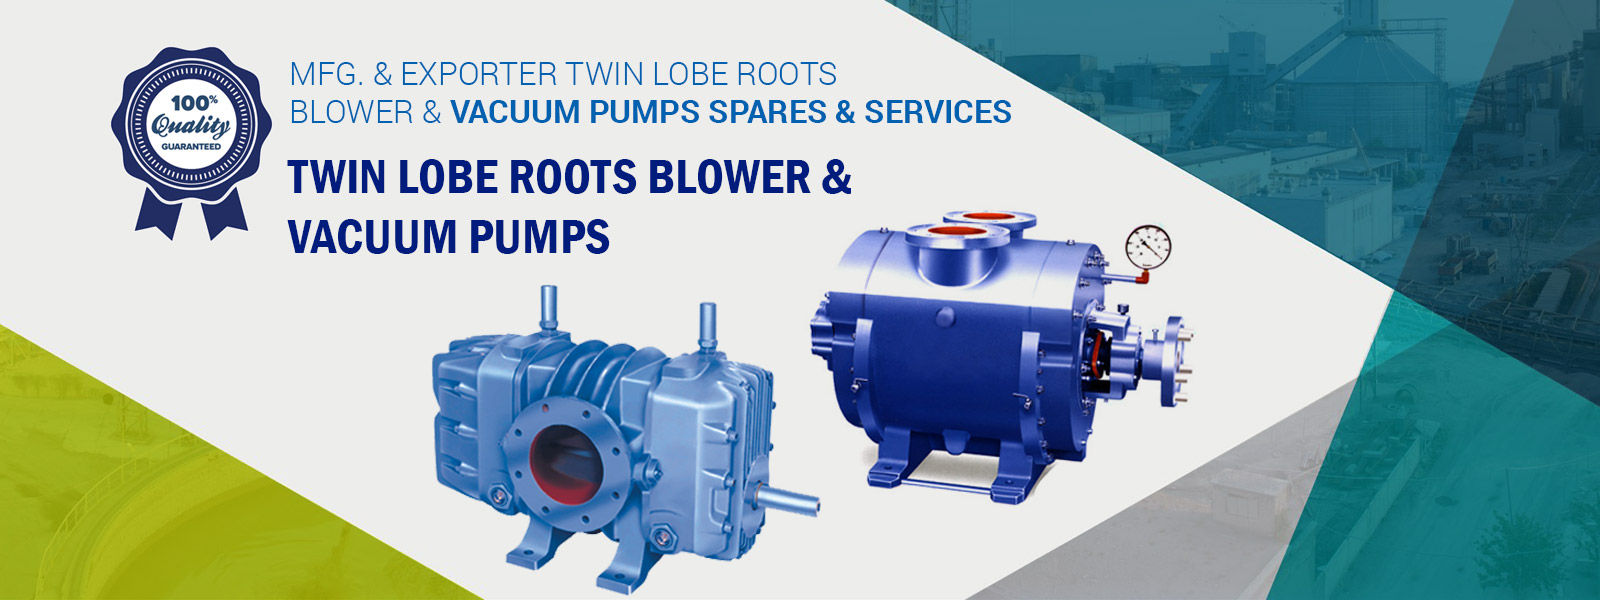 Twin Lobe Roots Blower Exporter